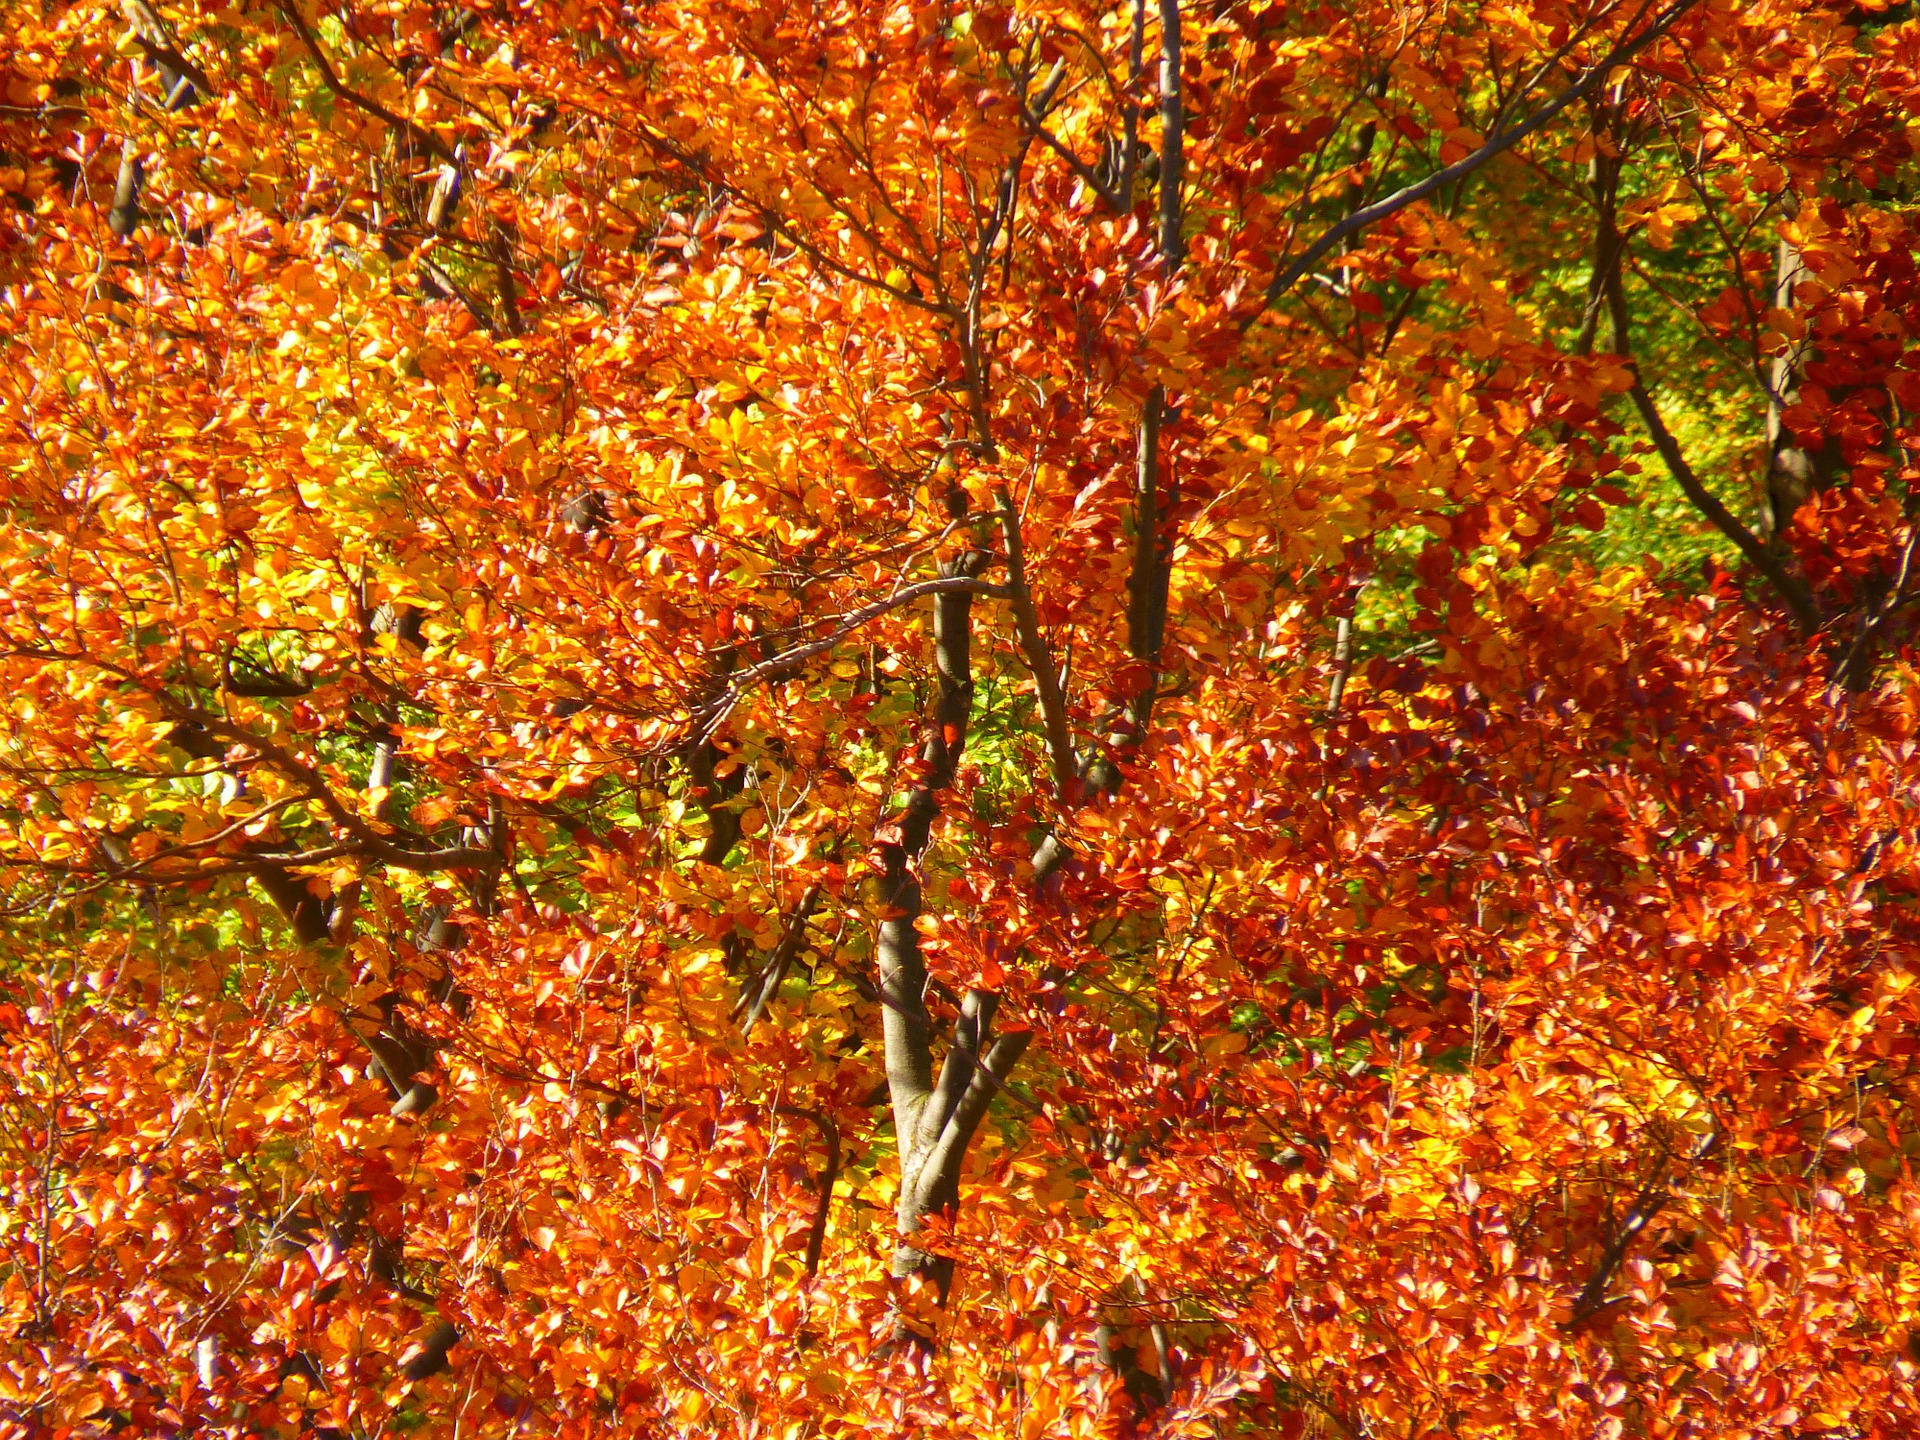 forest-63279_1920